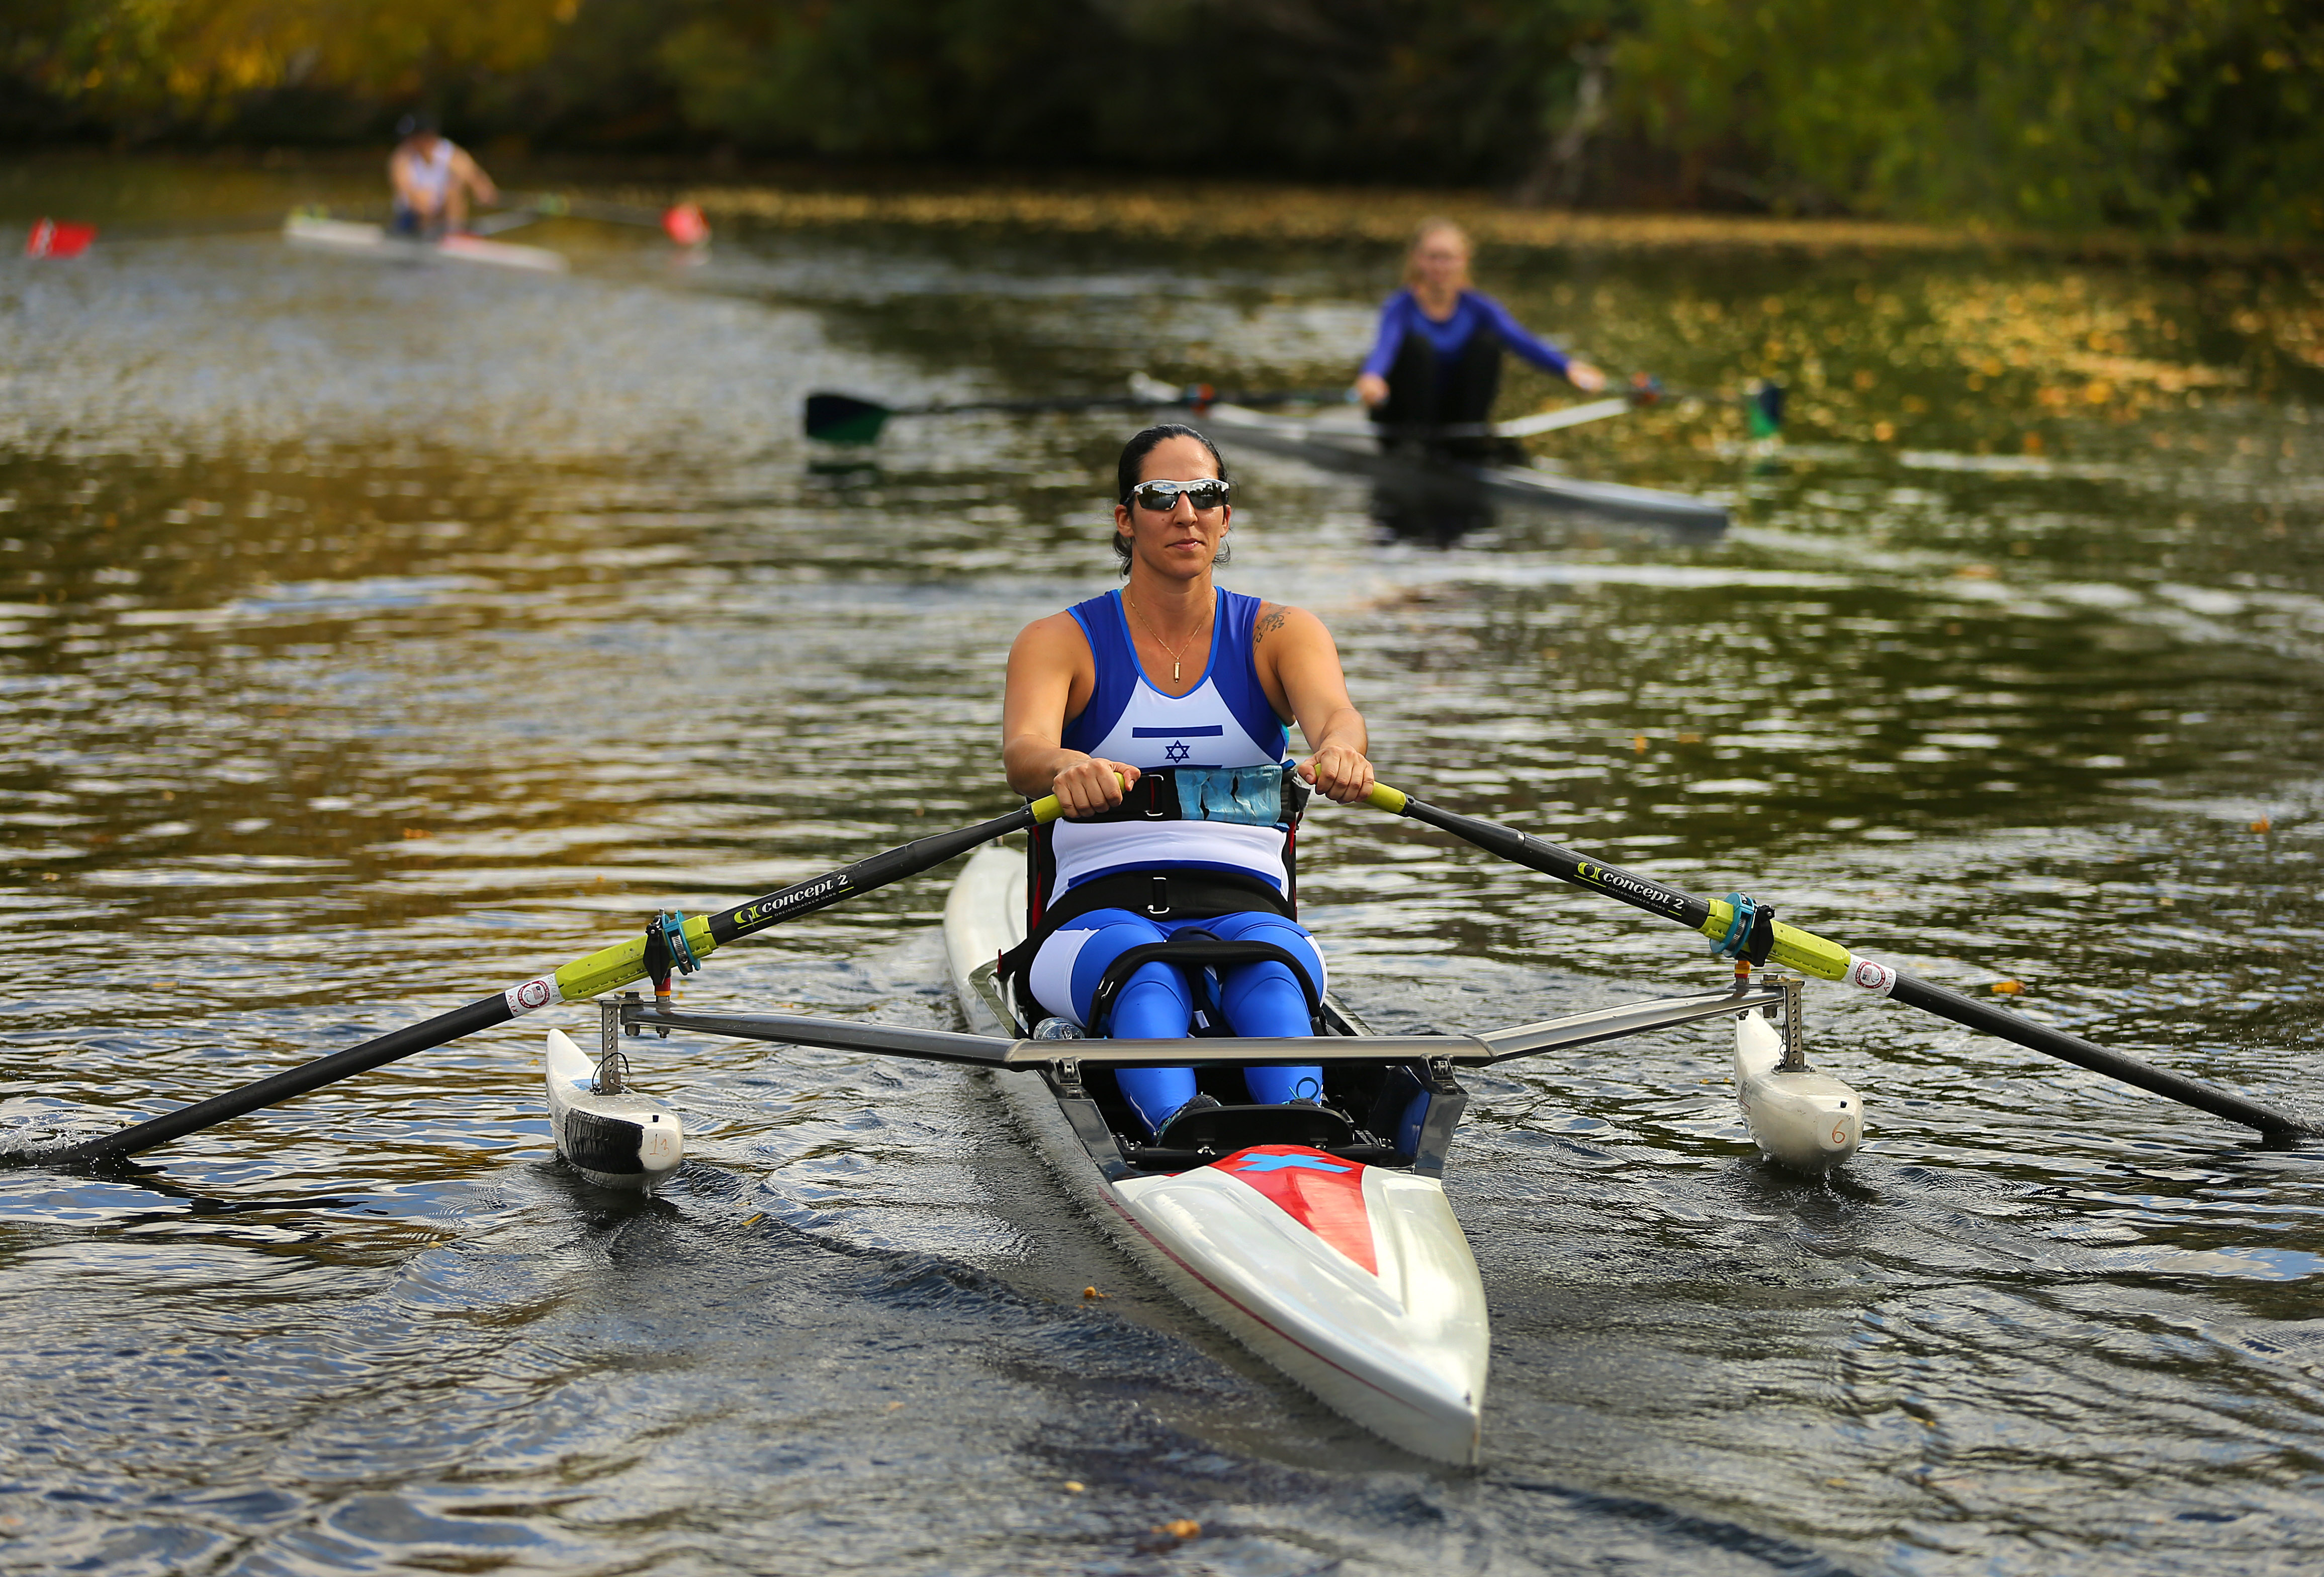 Israelis' Appearance At Head Of The Charles A Historic Moment